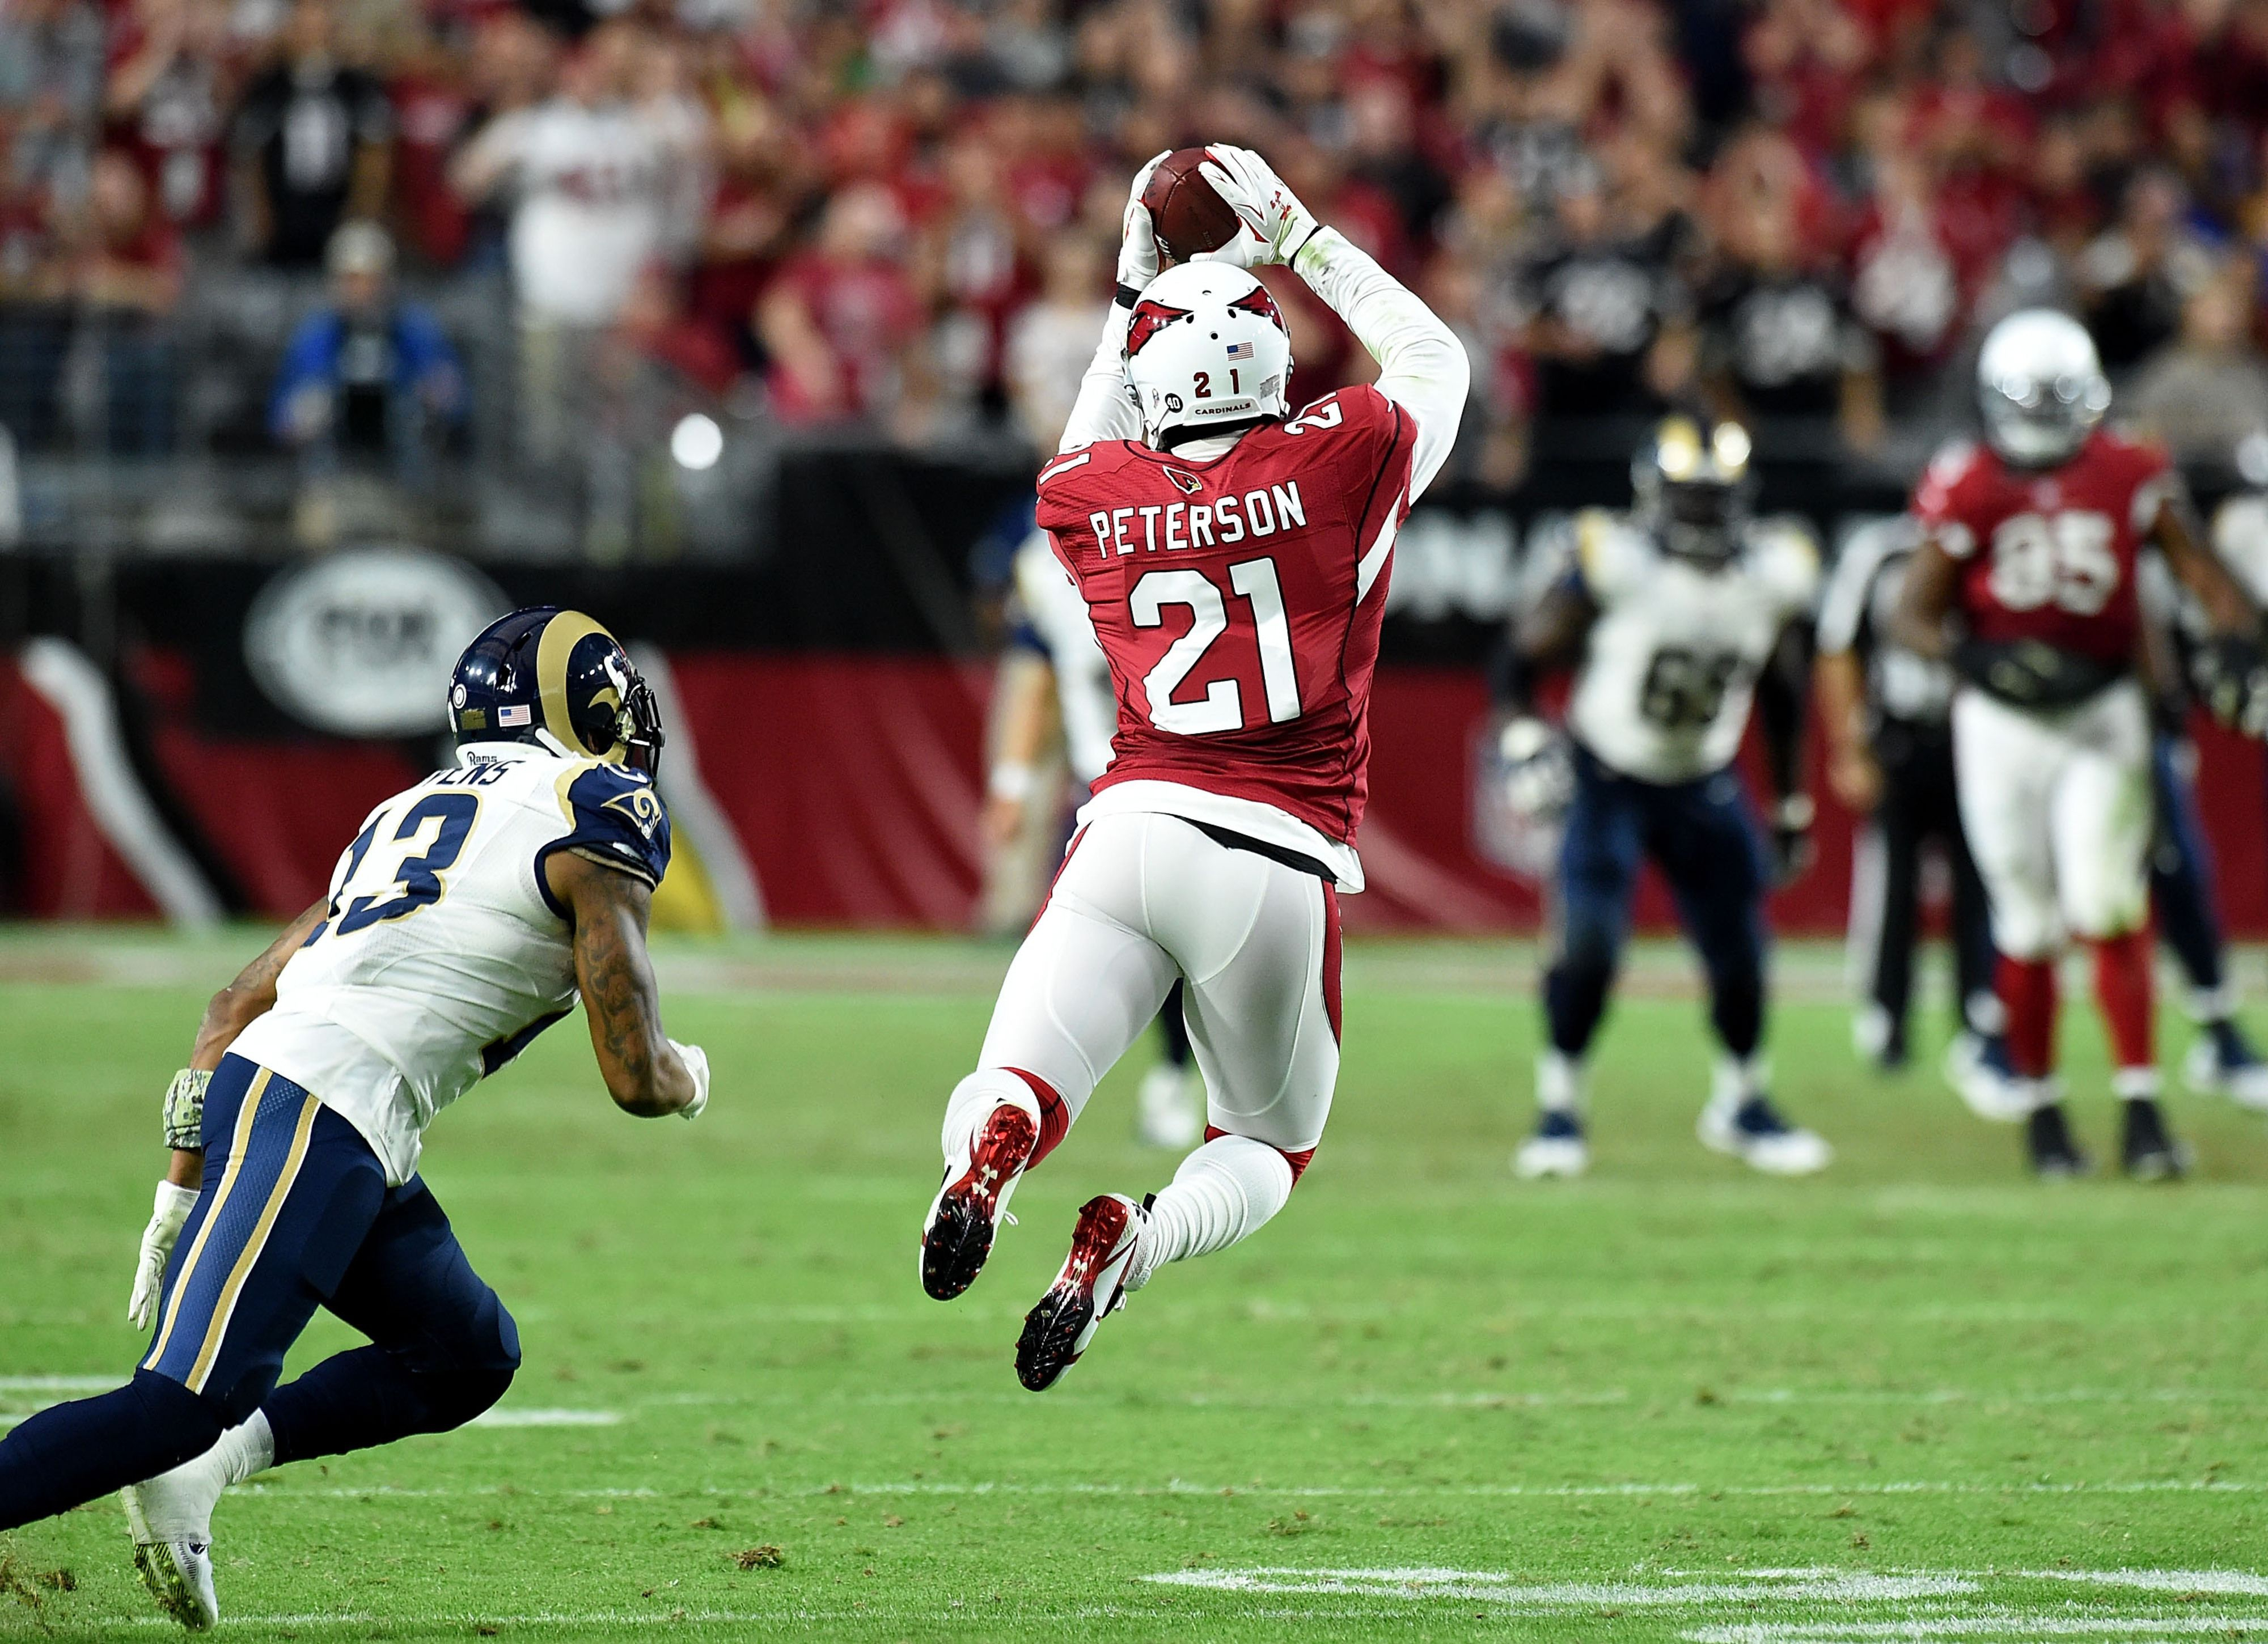 Patrick Peterson Widescreen